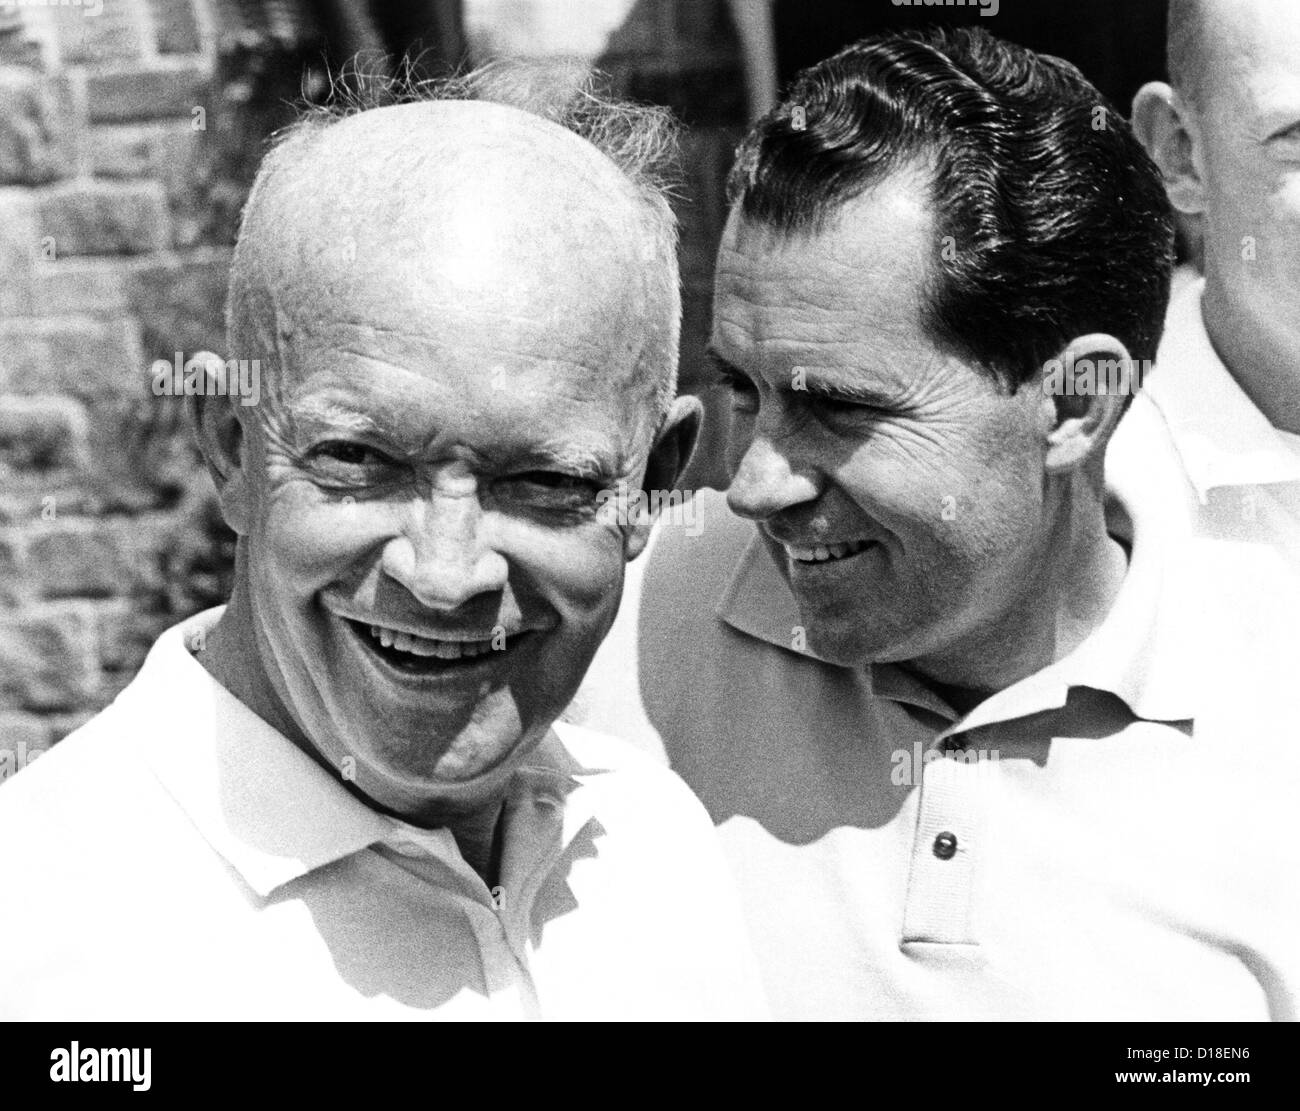 Former President Dwight Eisenhower and his Vice President, Richard Nixon meet to play golf. They breakfasted at - Stock Image